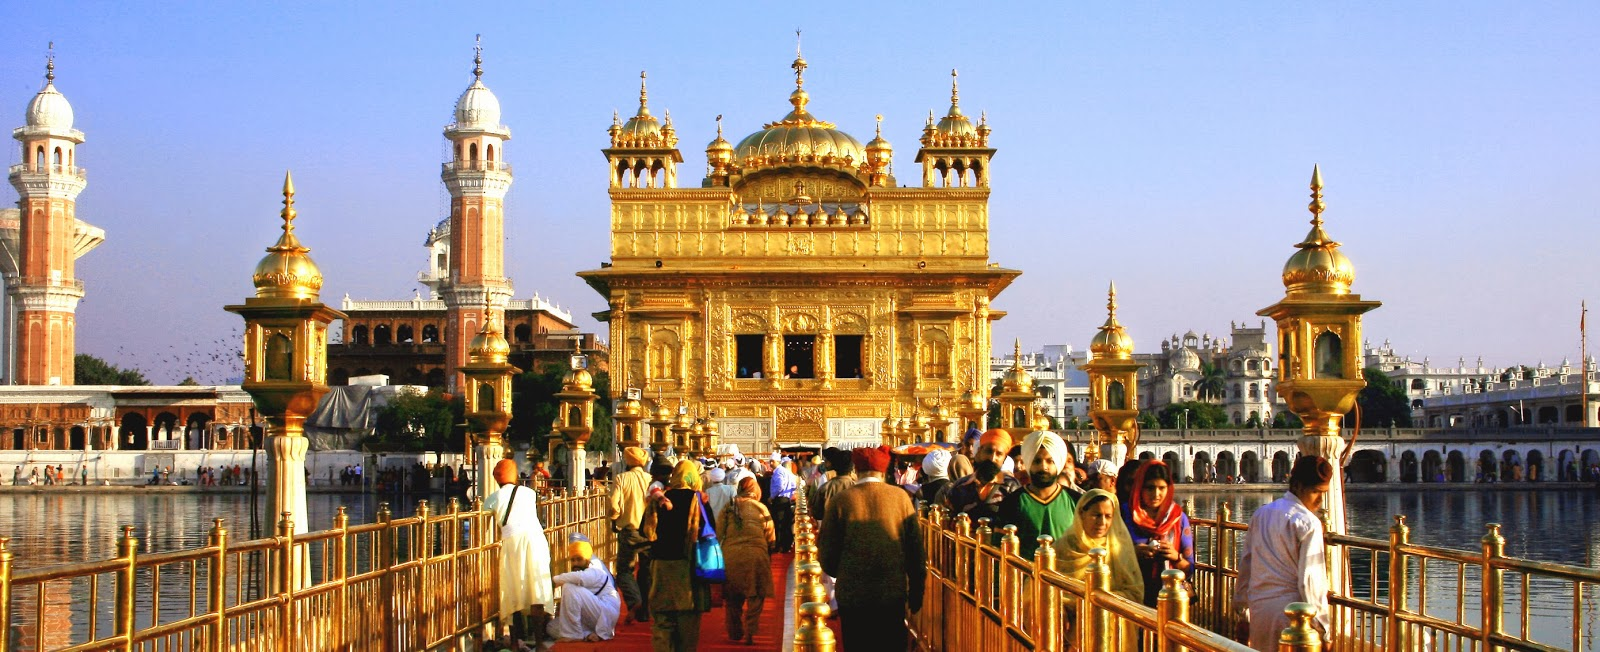 Hd punjab images popular photography - Golden temple images hd download ...